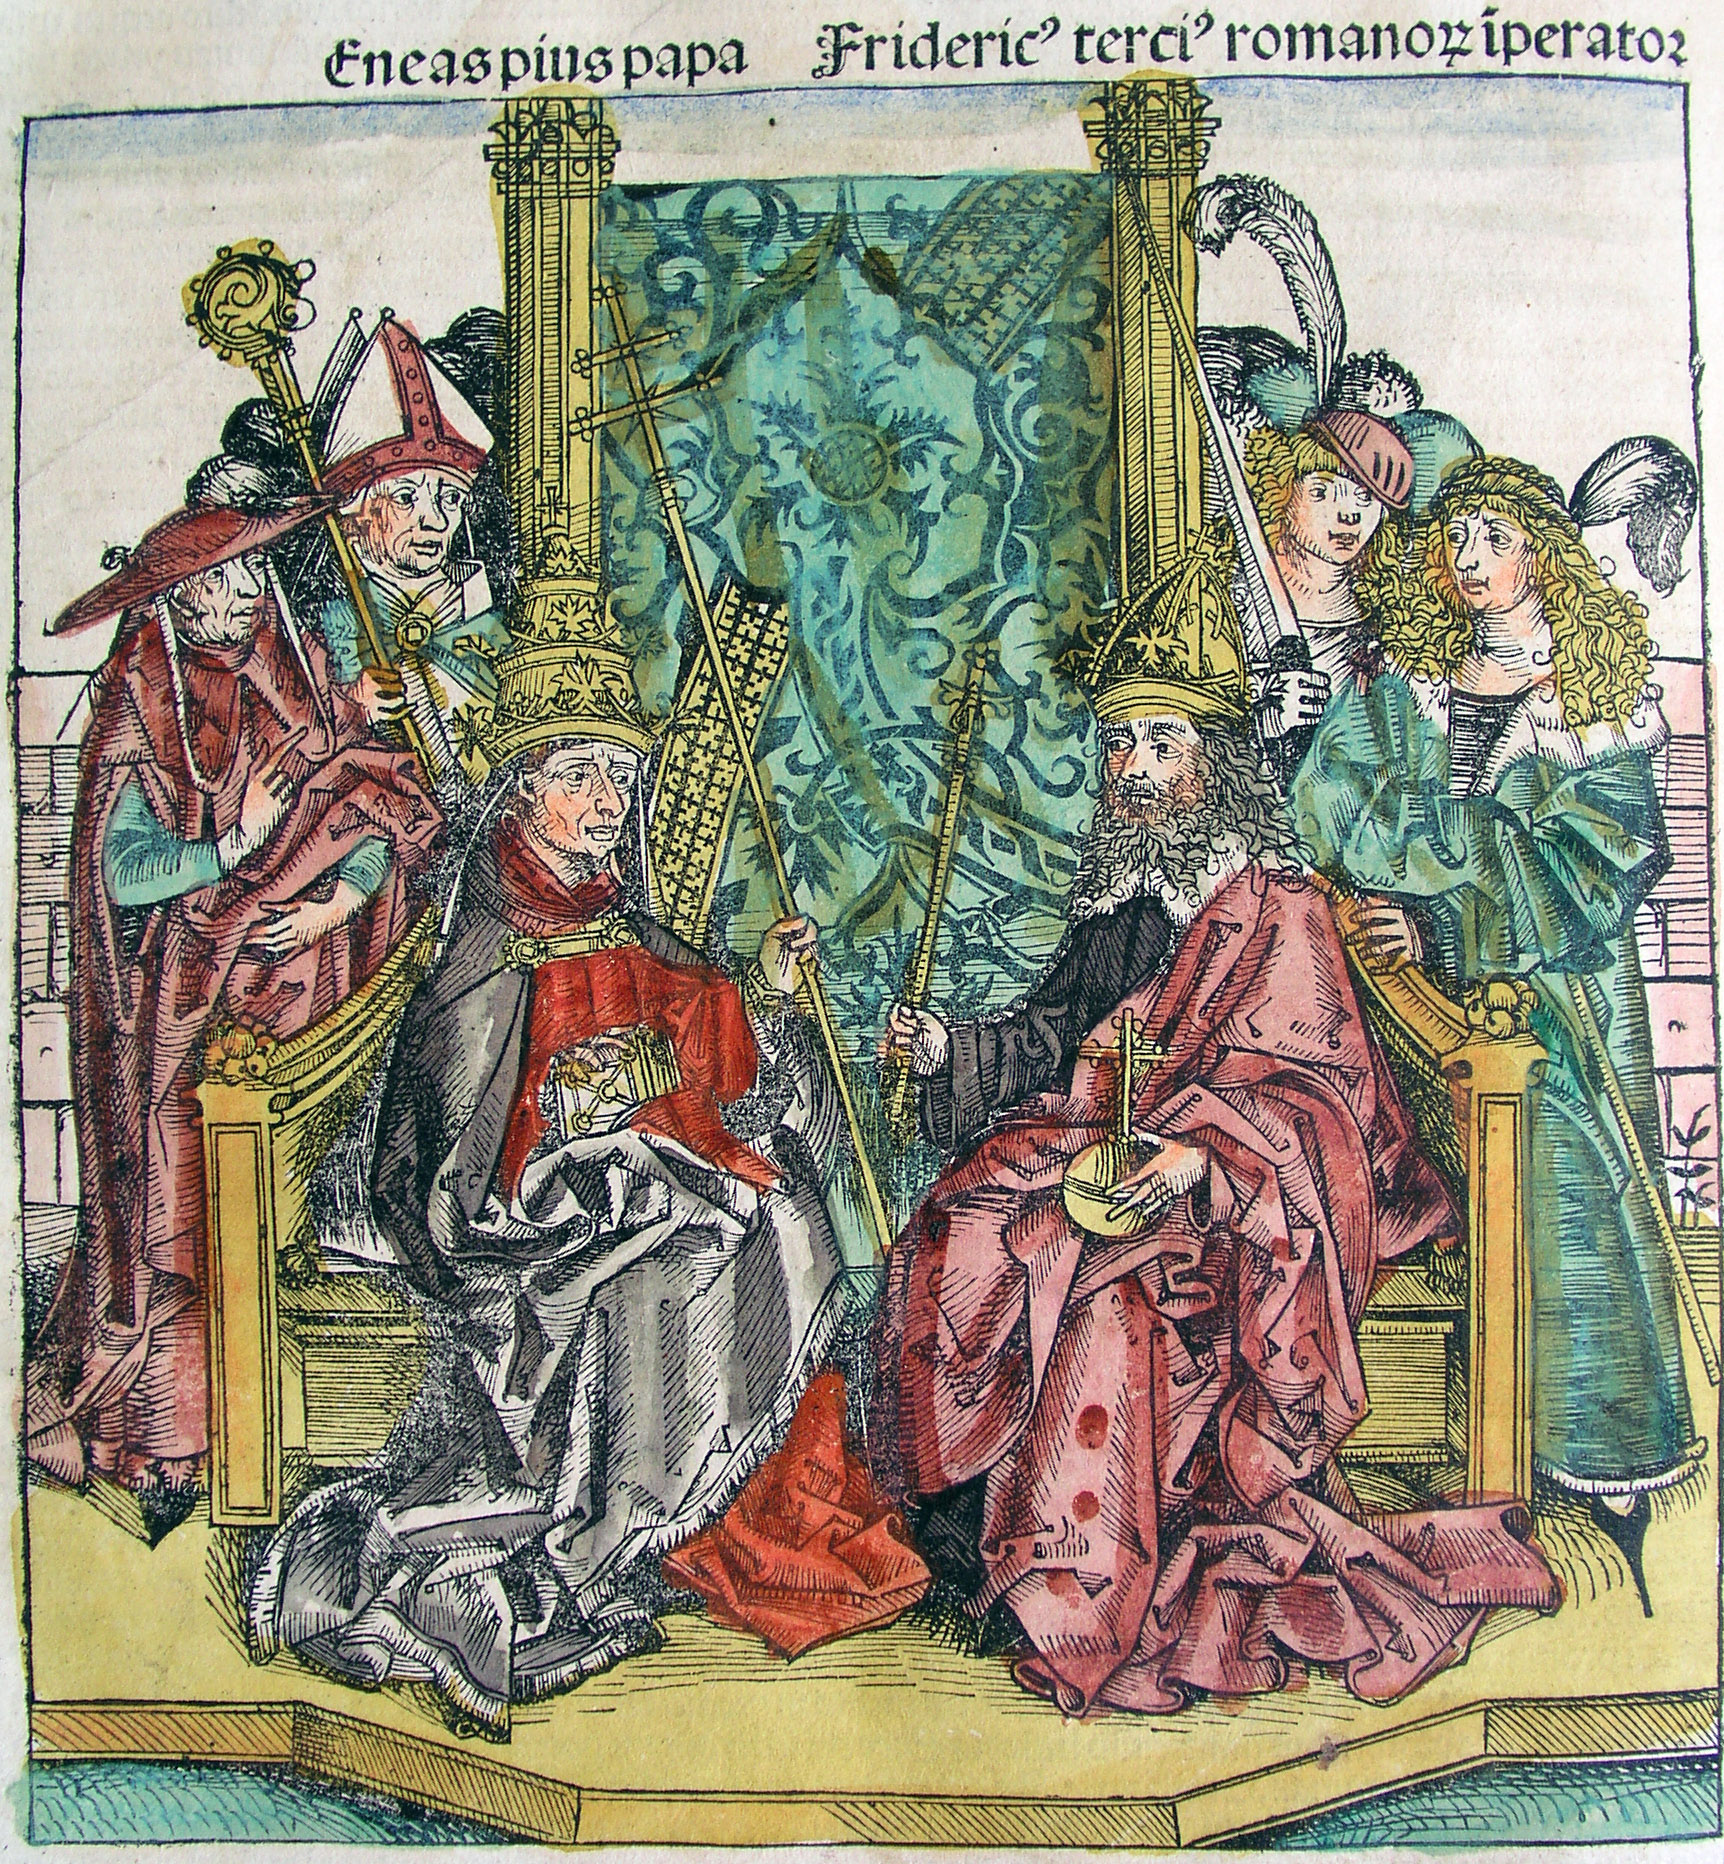 Depiction of Poderes universales